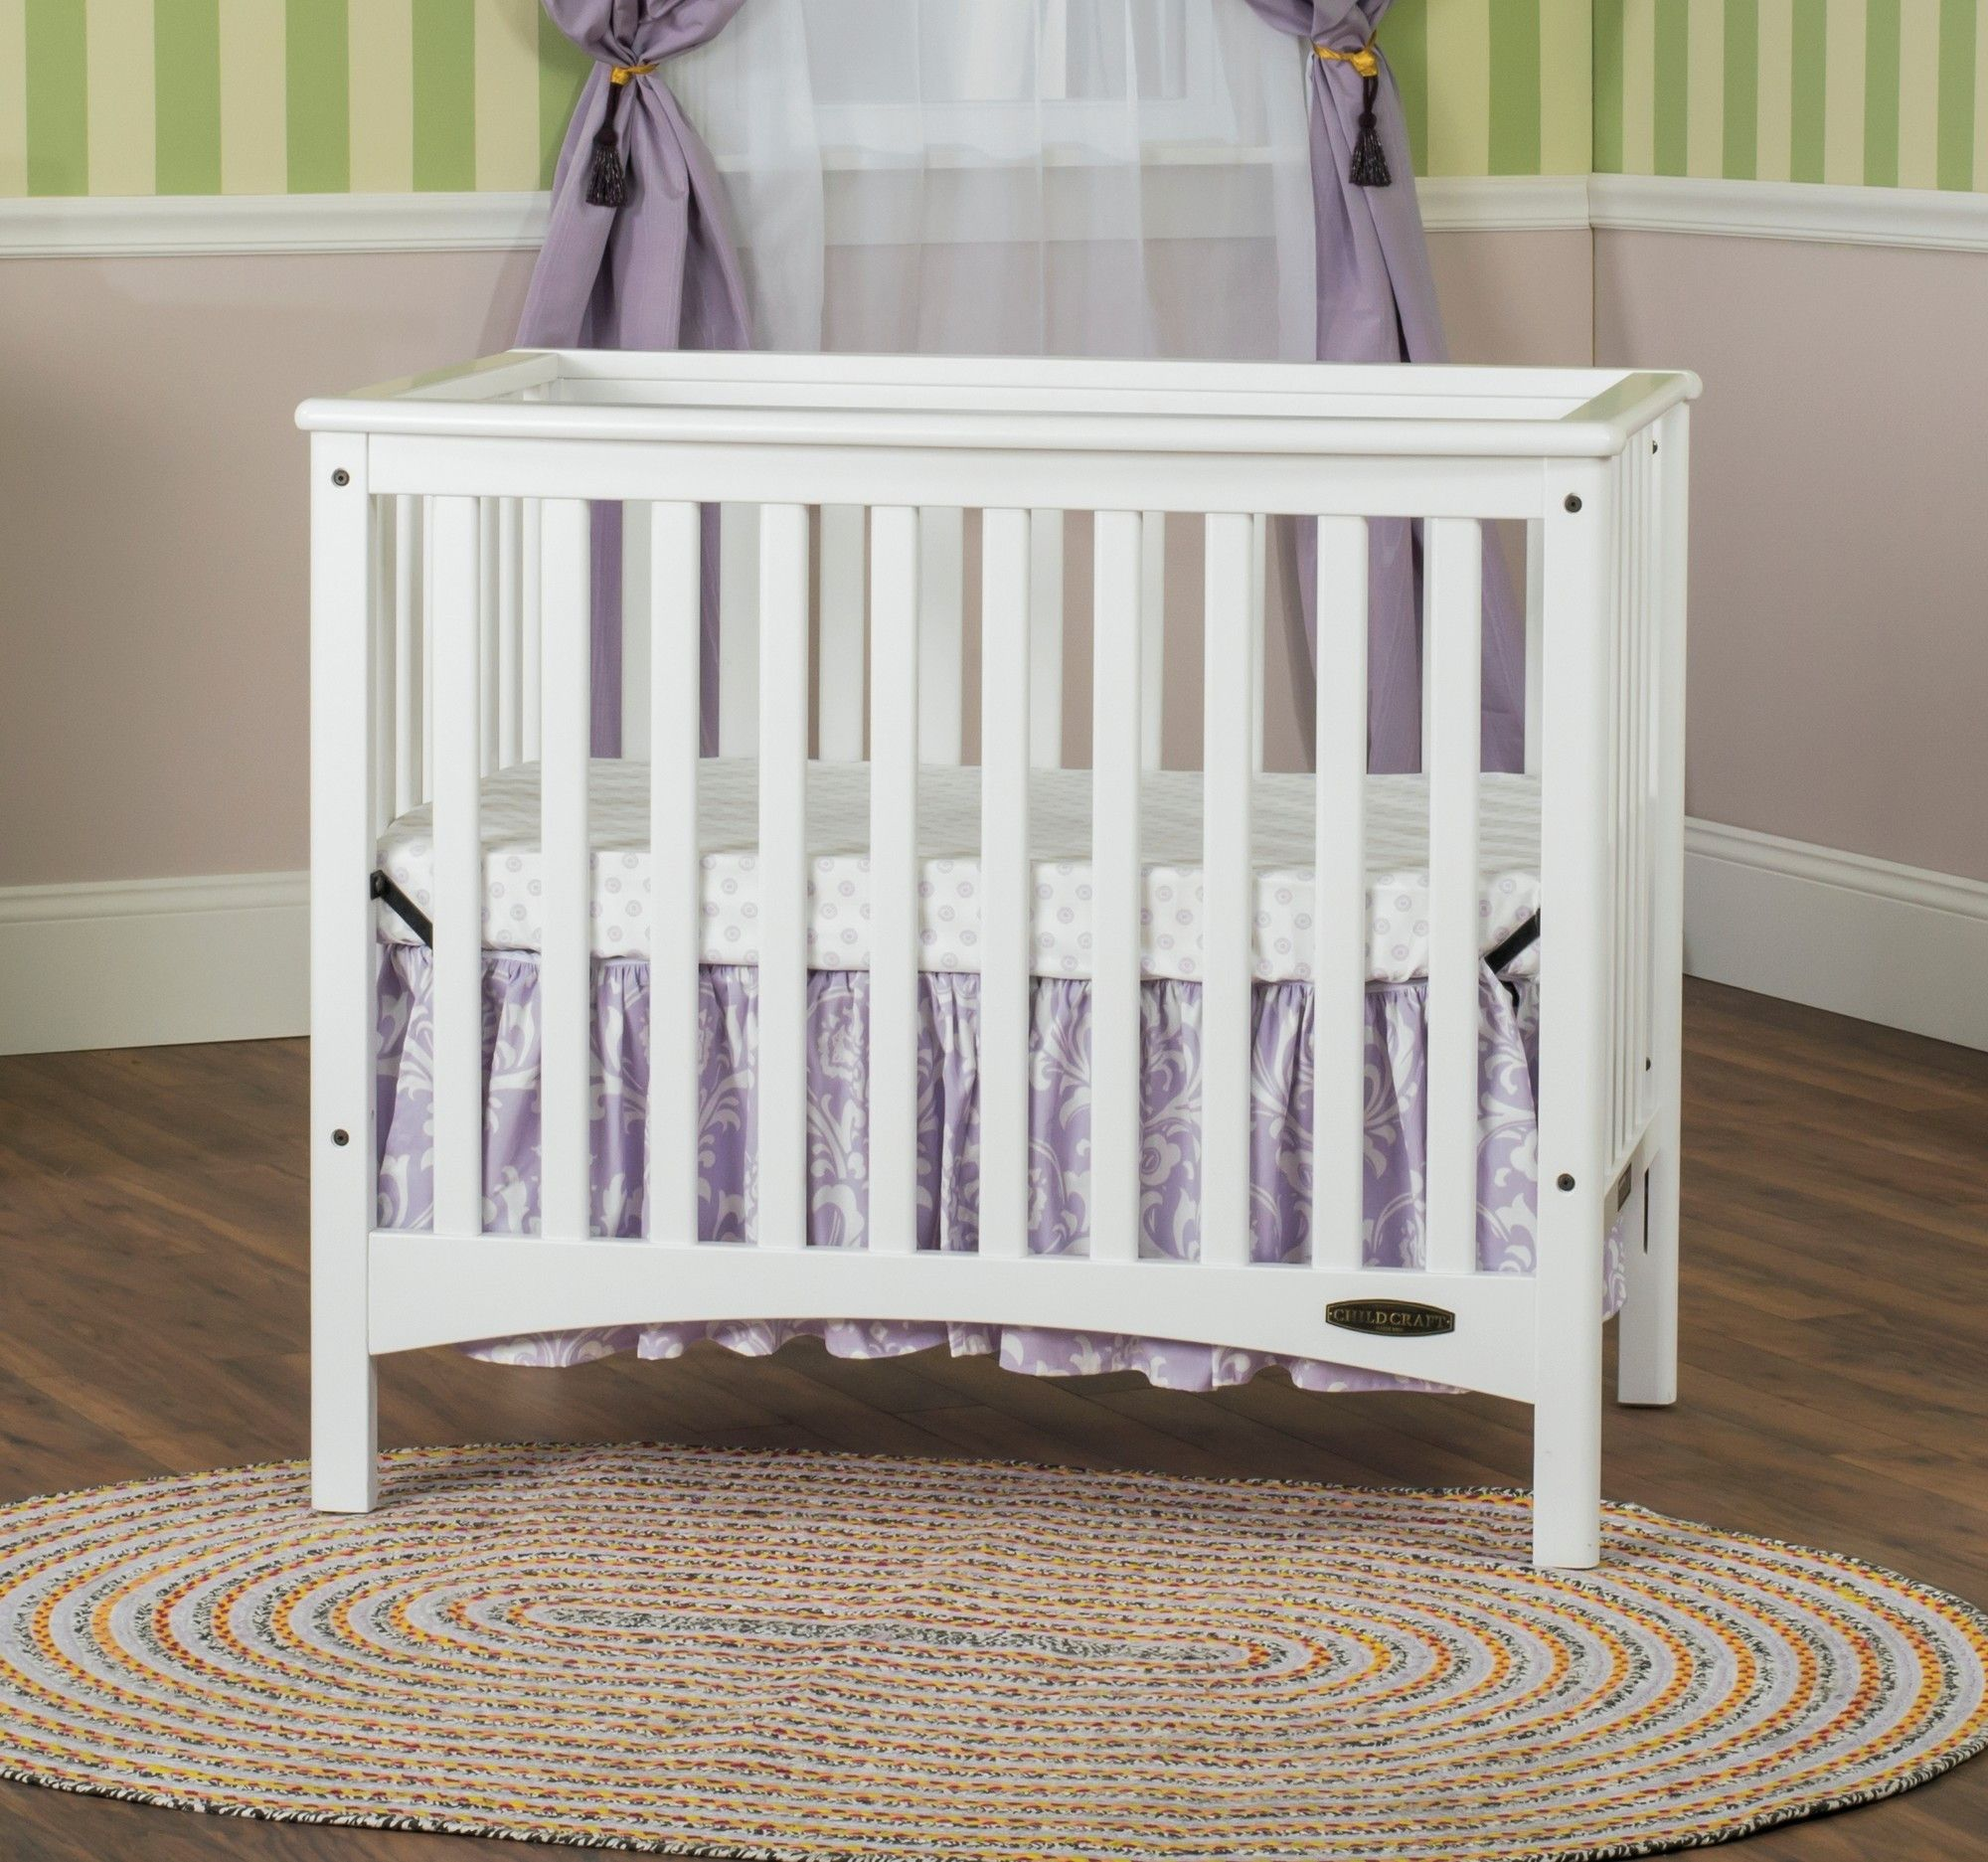 Child Craft London Euro Mini Convertible Crib Cribs Convertible Crib Mini Crib